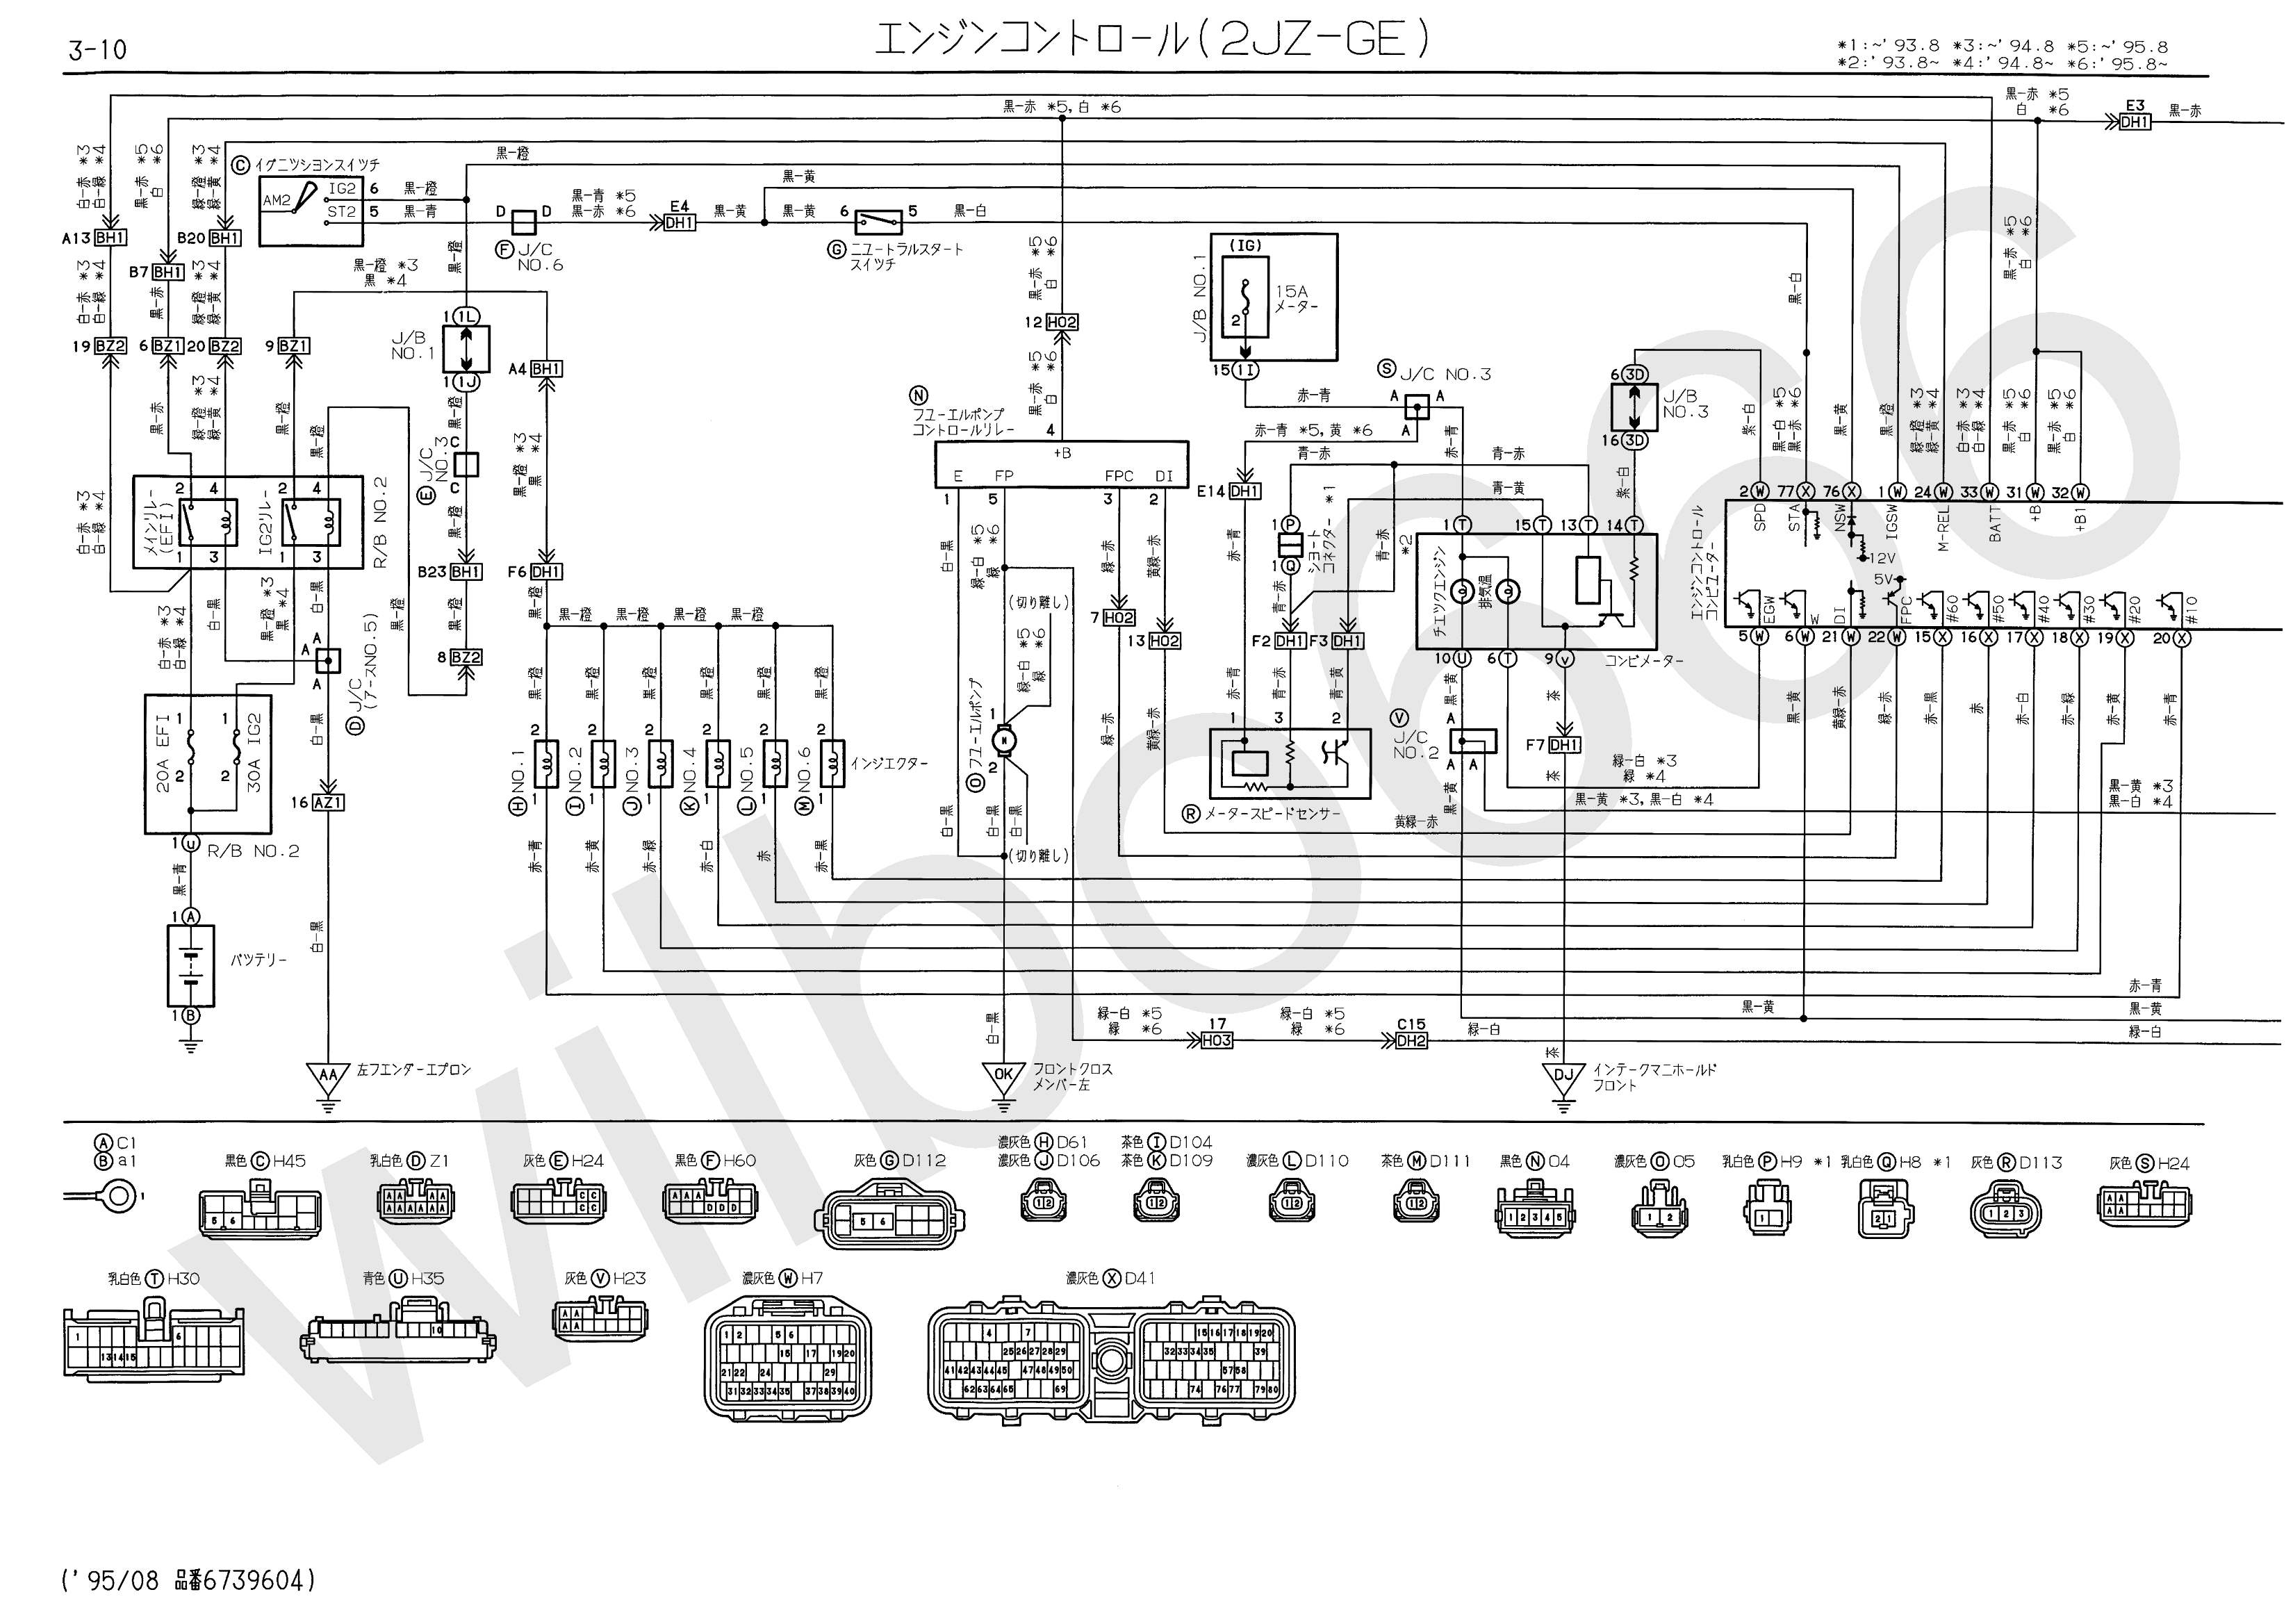 General Electric Motors Wiring Diagram Apktodownload